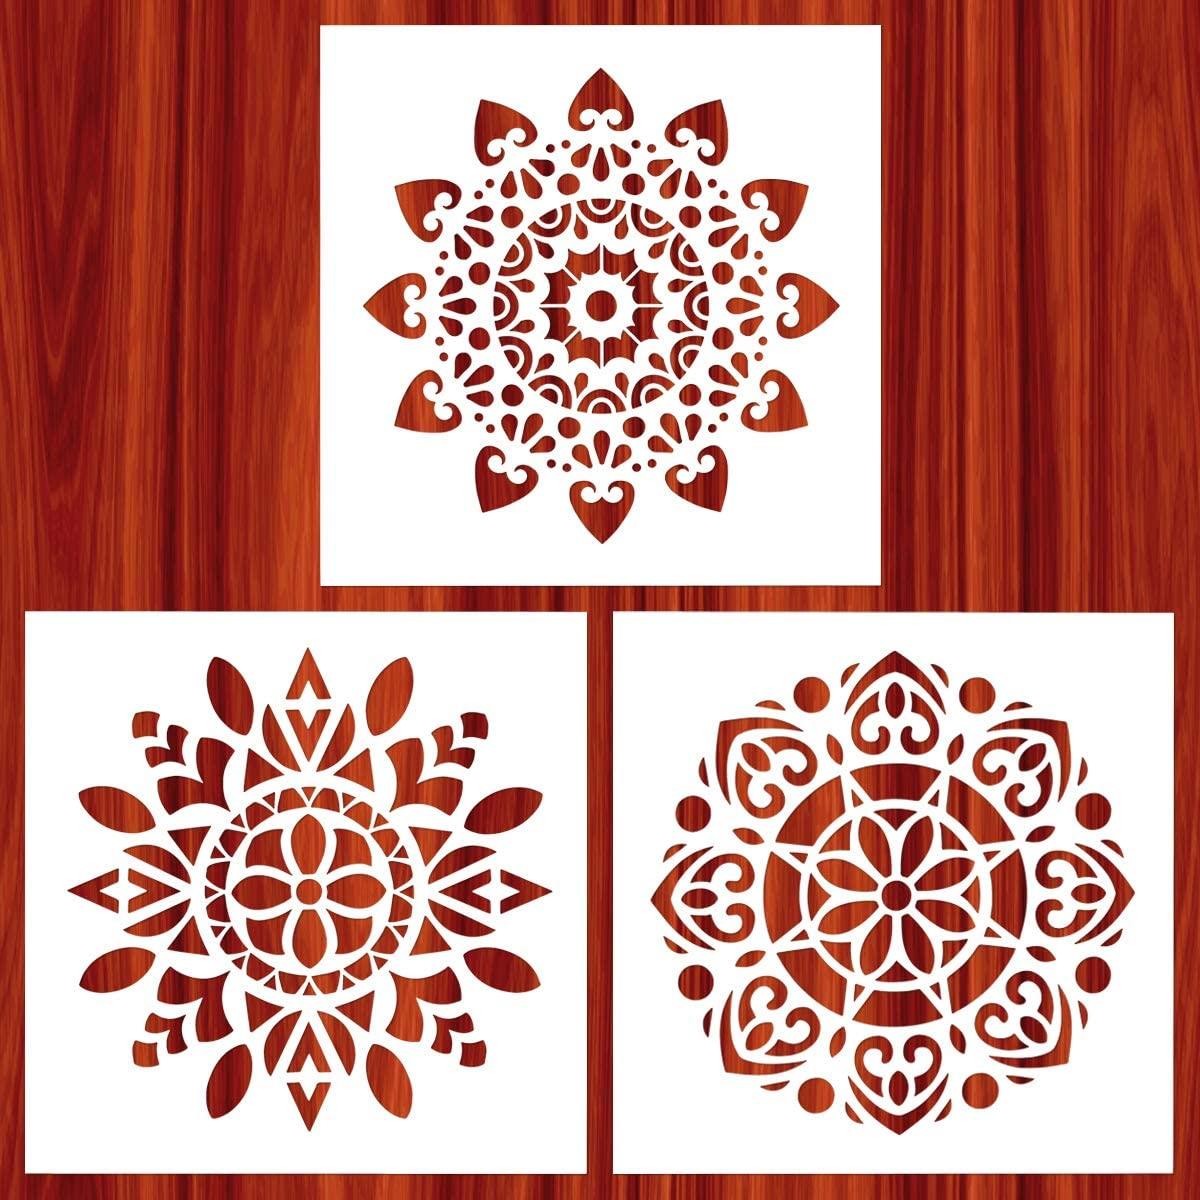 AK KYC Stencils Mandala Painting Stencil Stencils for Painting (12x12 inch Large Size) on Wood Wall Floor Tile Fabric Furniture Decor Mandala Dotting Tools Reusable, Style 1